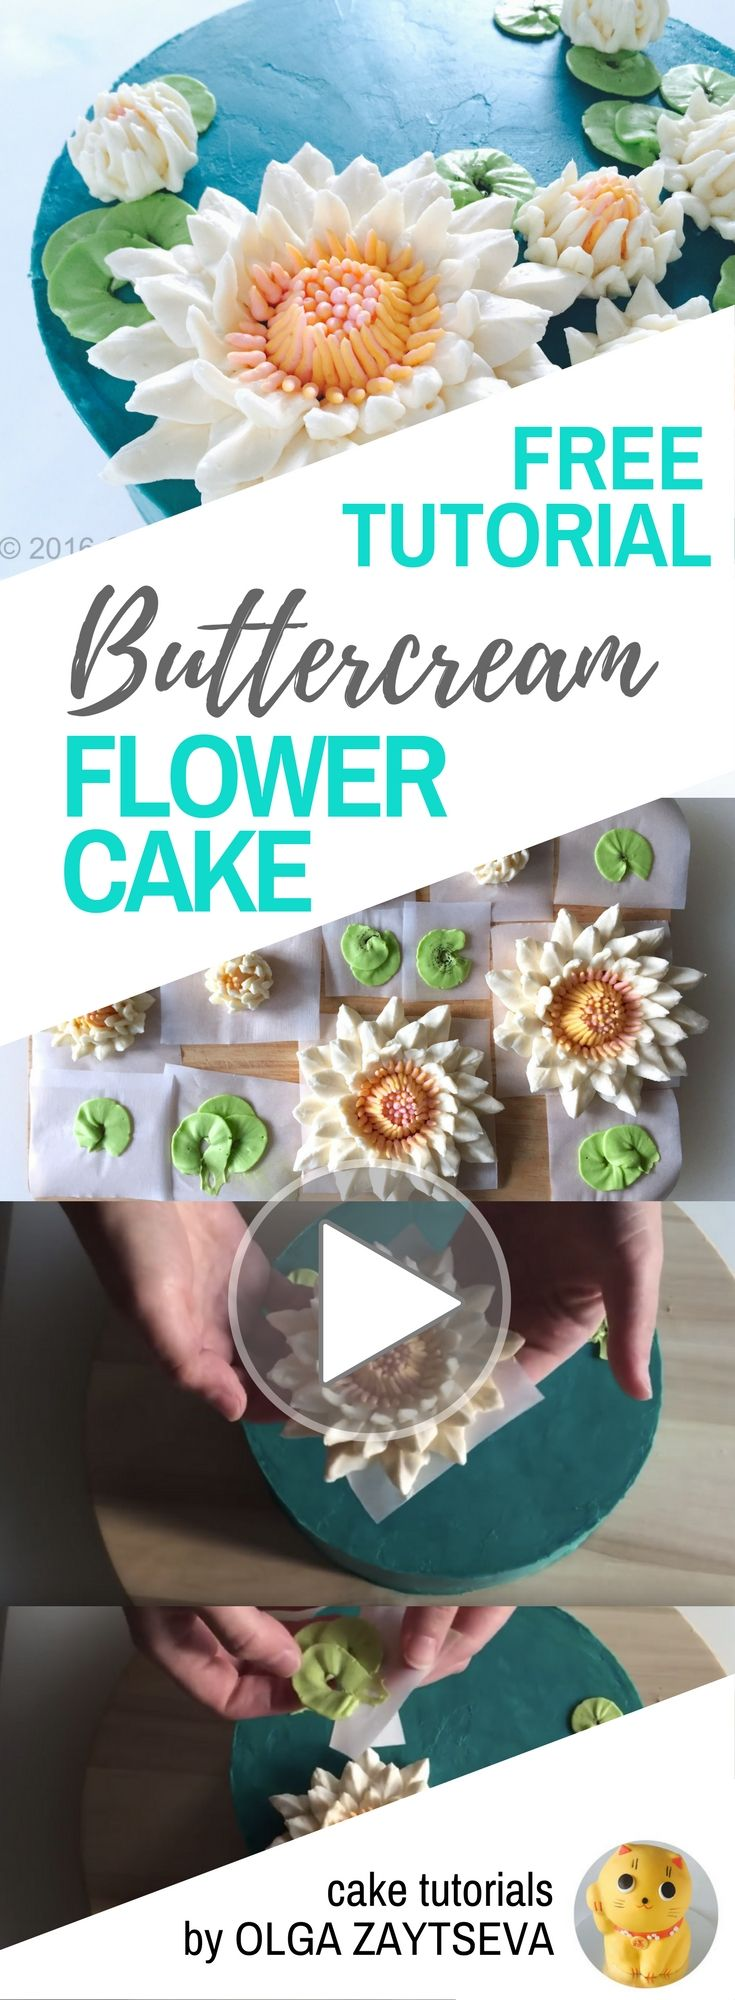 HOT CAKE TRENDS How to make Buttercream Water Lily cake - Cake decorating tutorial by Olga Zaytseva. Learn how to make very trendy buttercream Water Lily flowers and create this gorgeous cake.